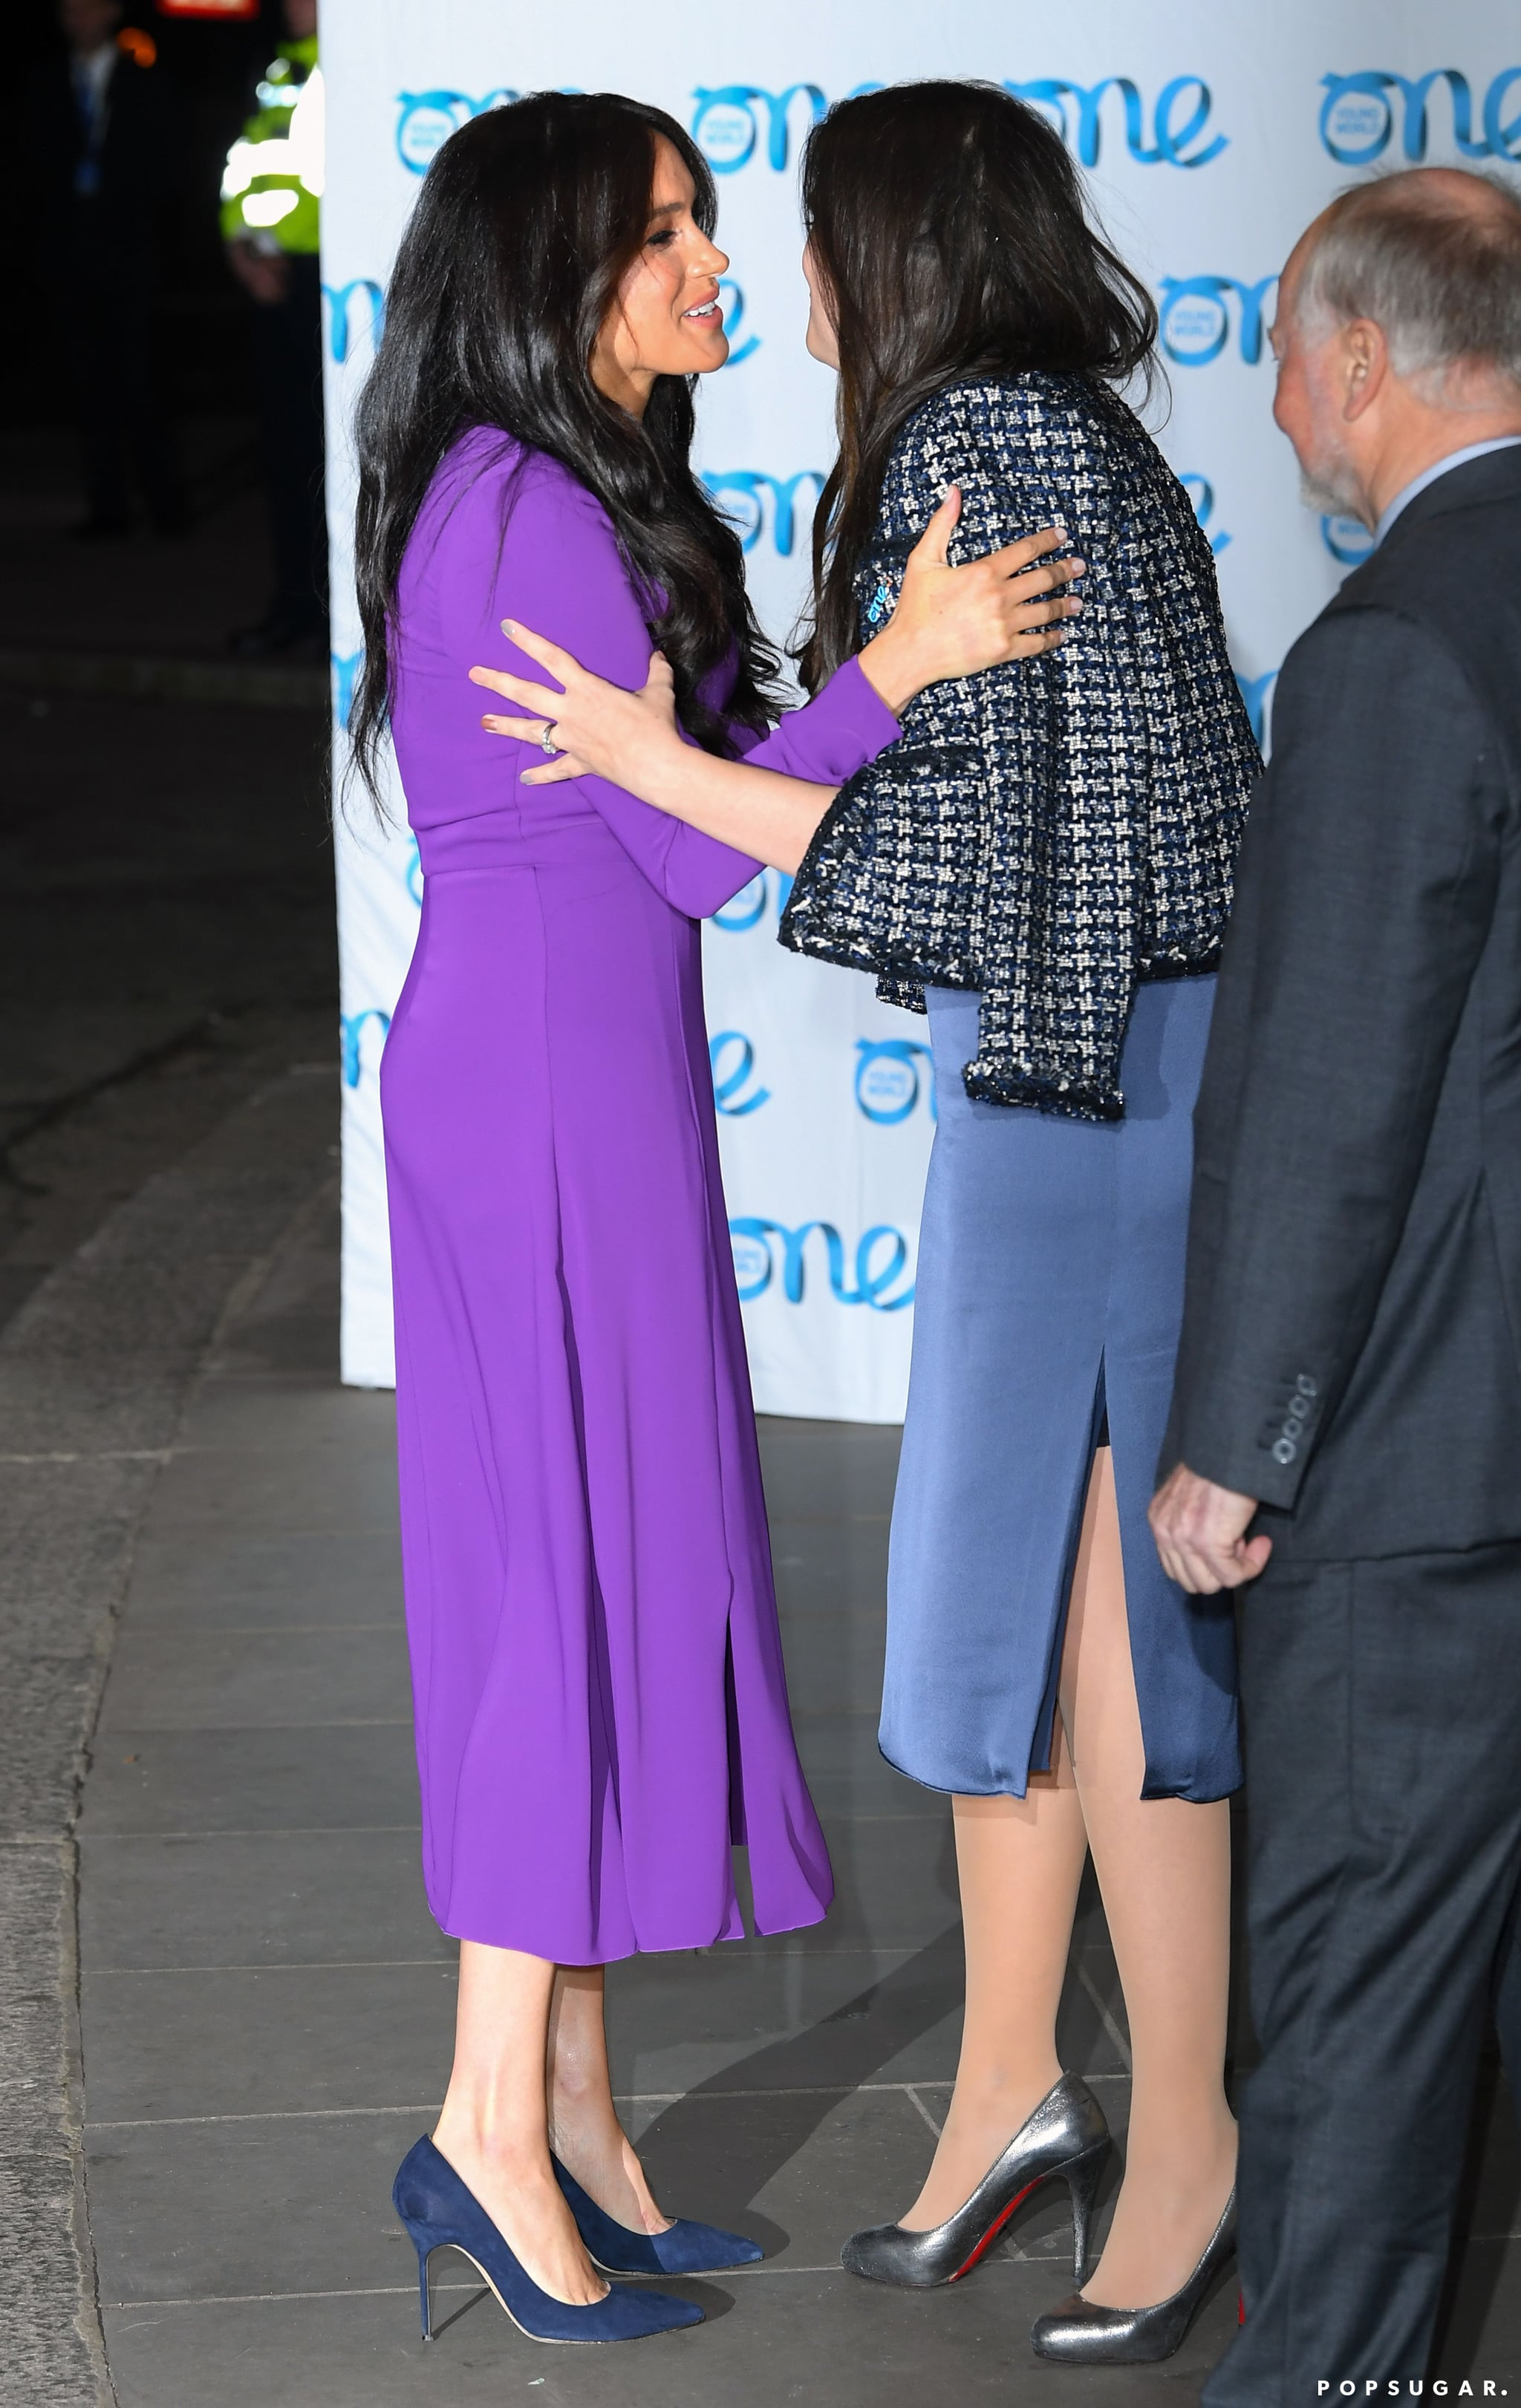 celebrity entertainment meghan markle returns to one young world summit 3 years later popsugar celebrity photo 4 meghan markle returns